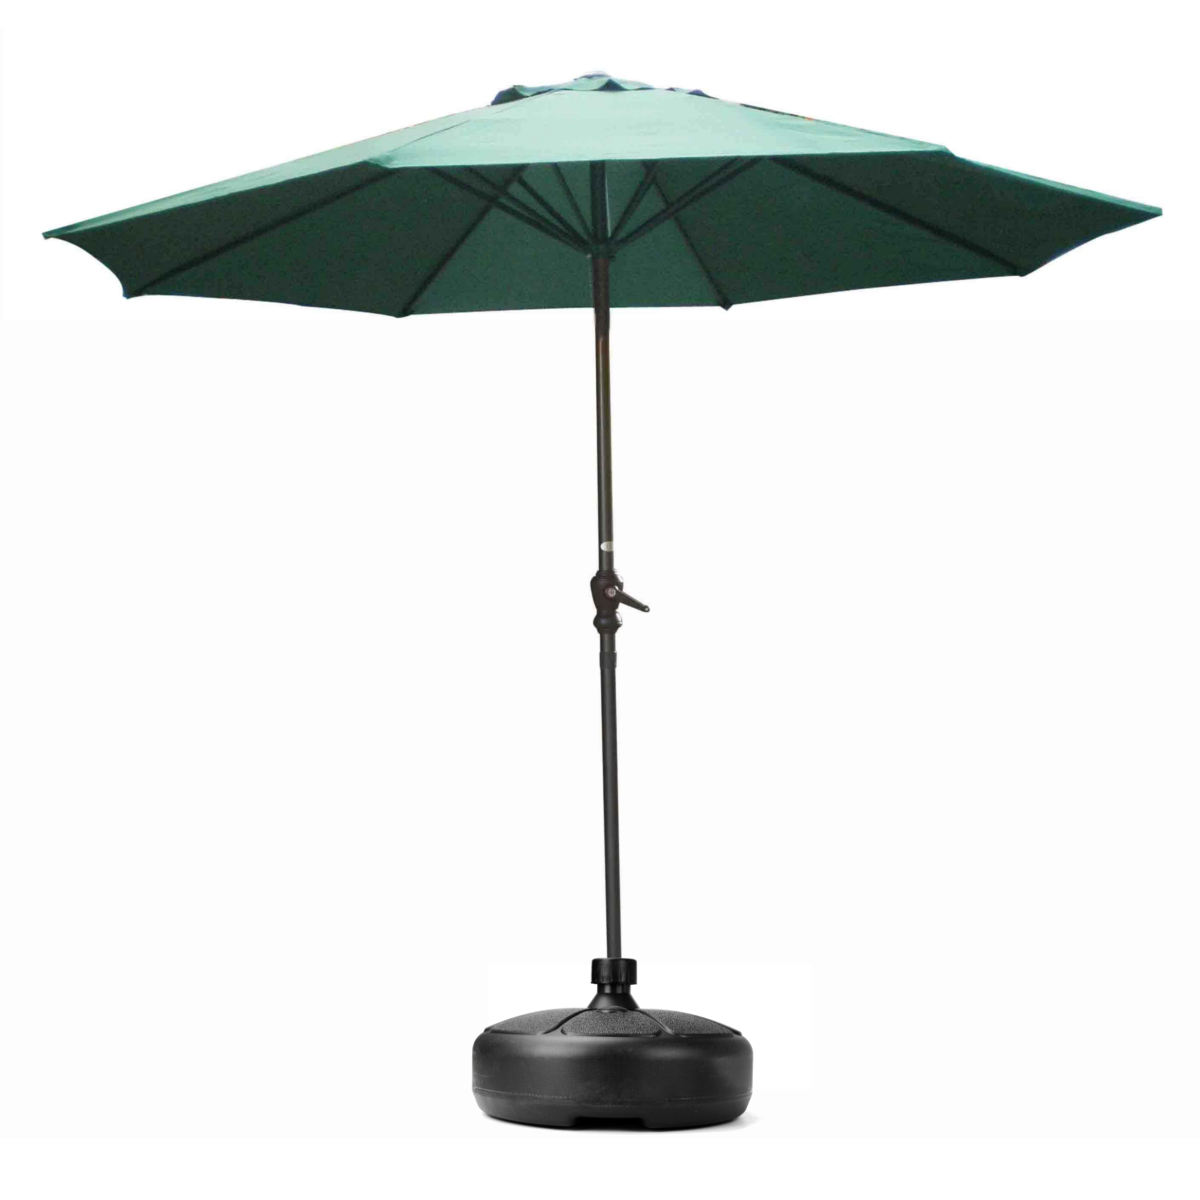 Outdoor furniture parasol garden umbrella stand round for Outdoor patio accessories